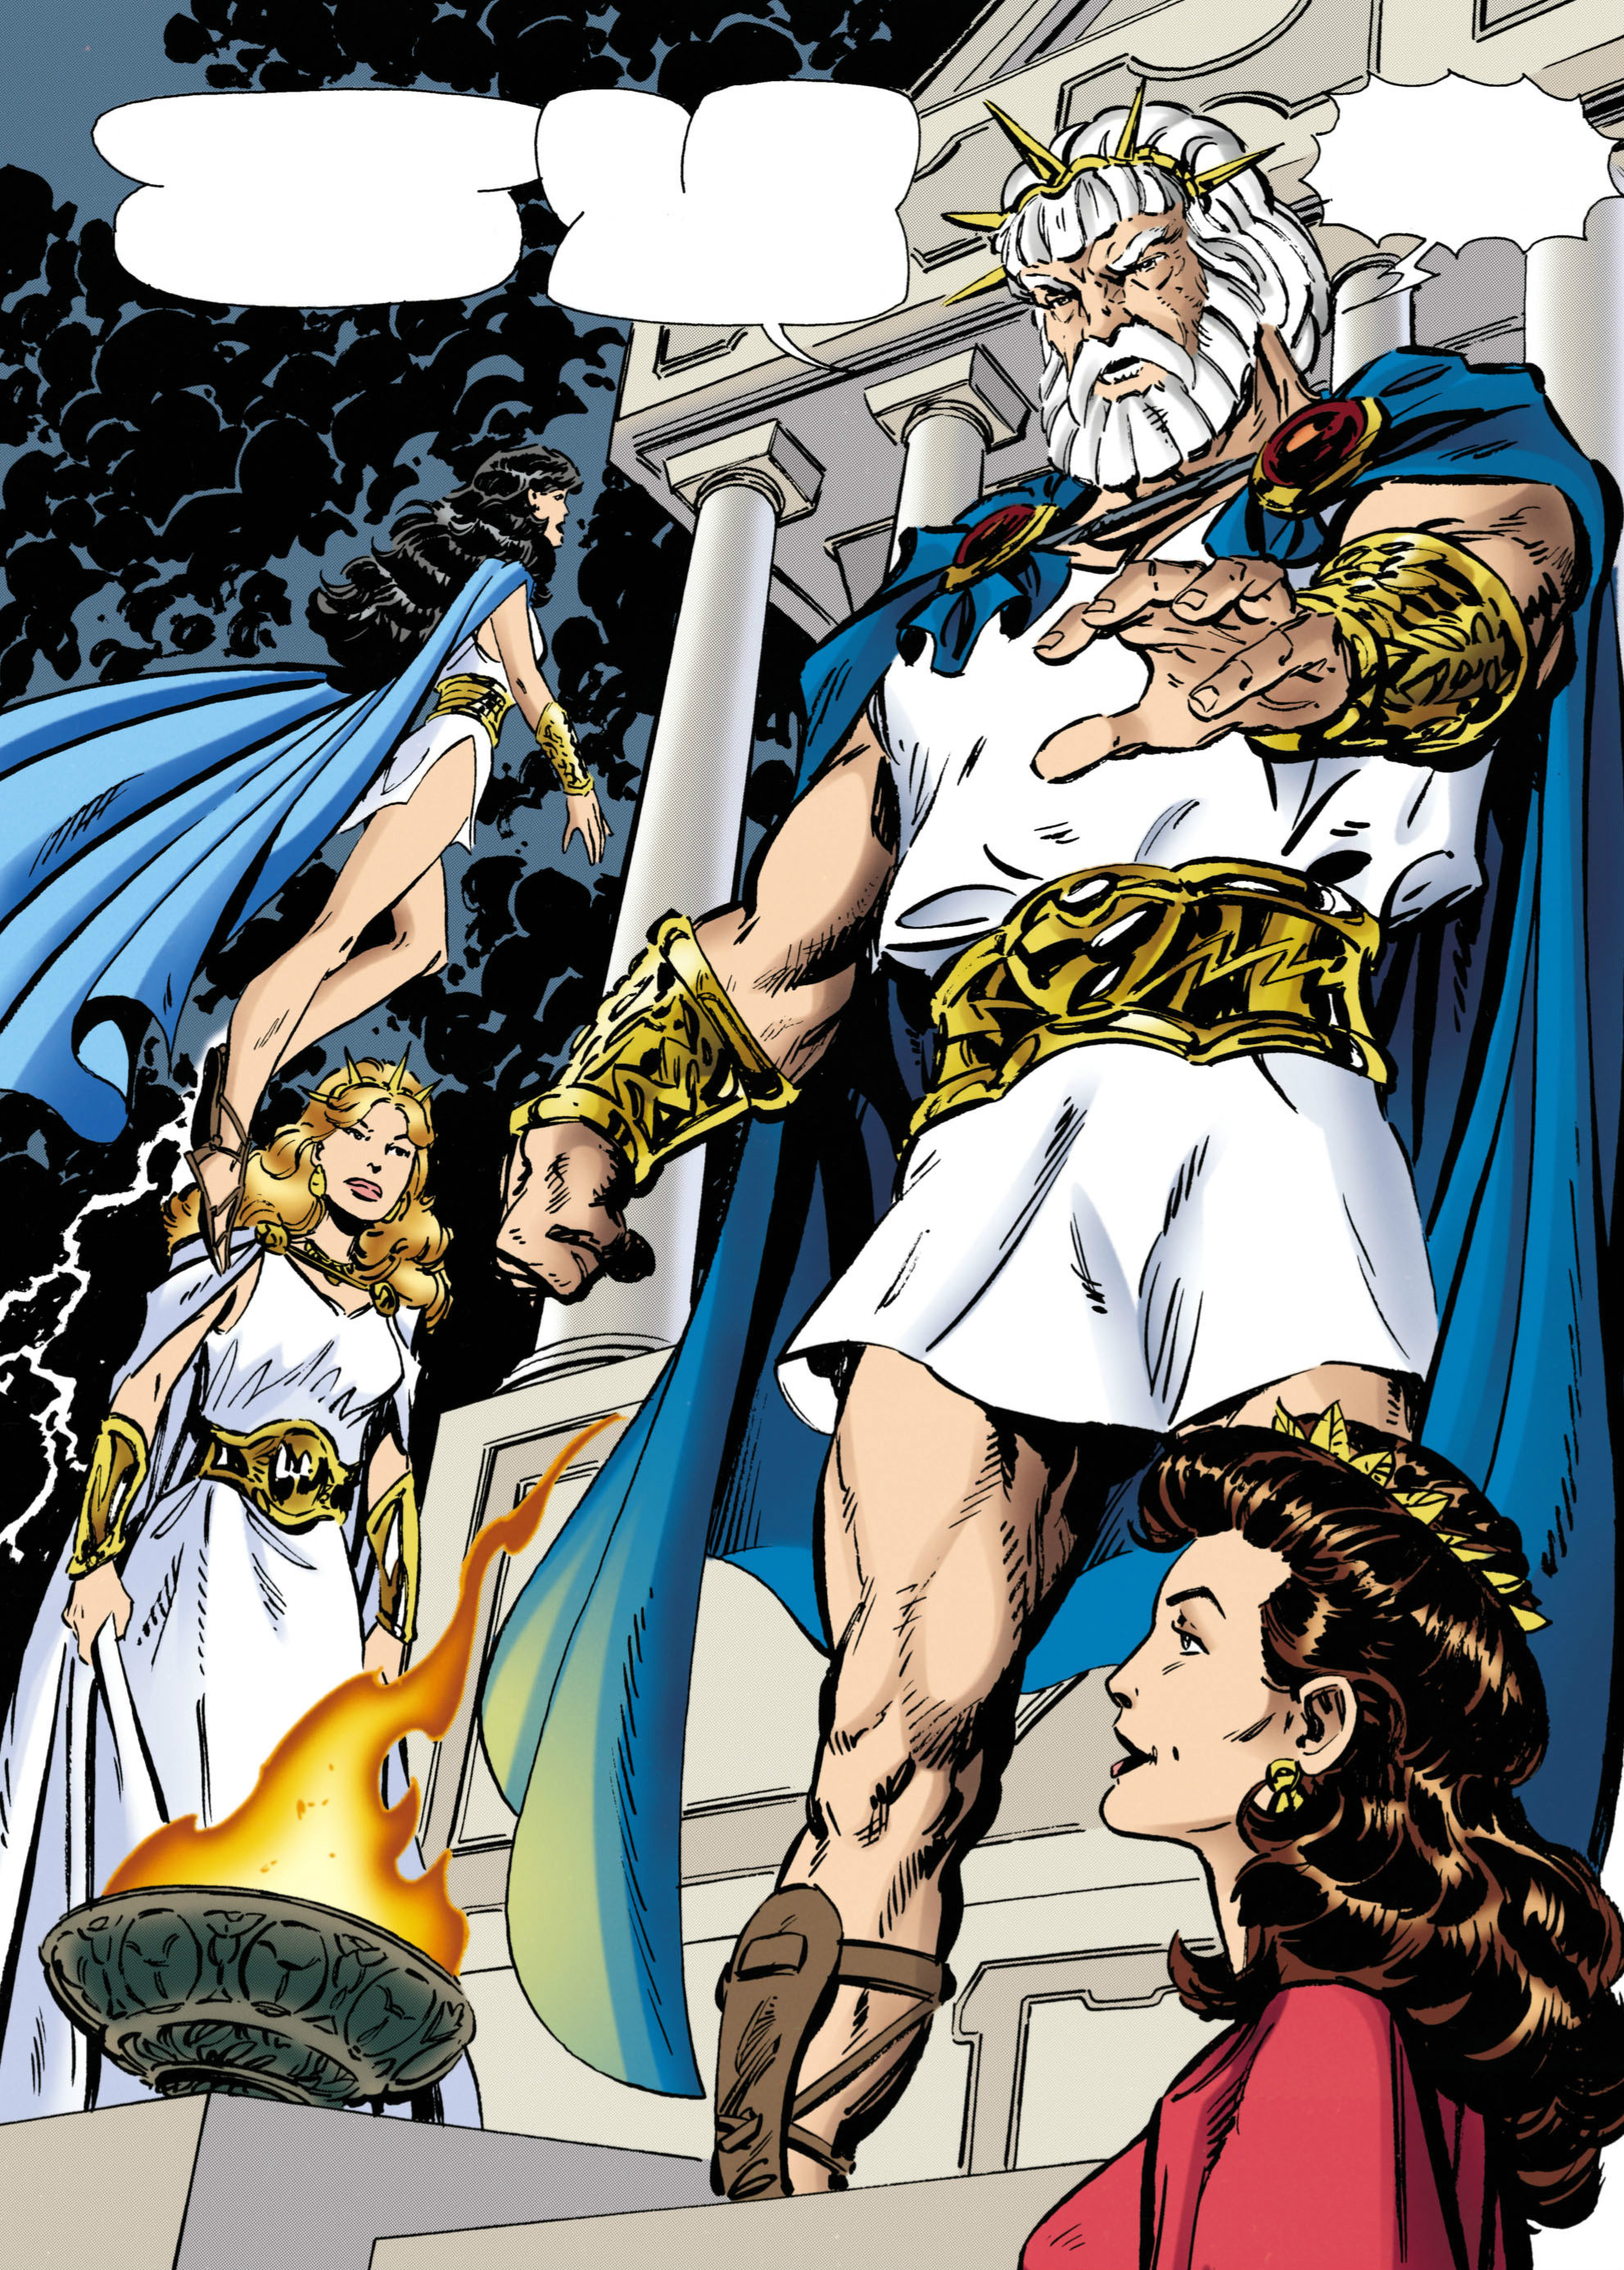 Zeus (DC Comics) | VS Battles Wiki | FANDOM powered by Wikia